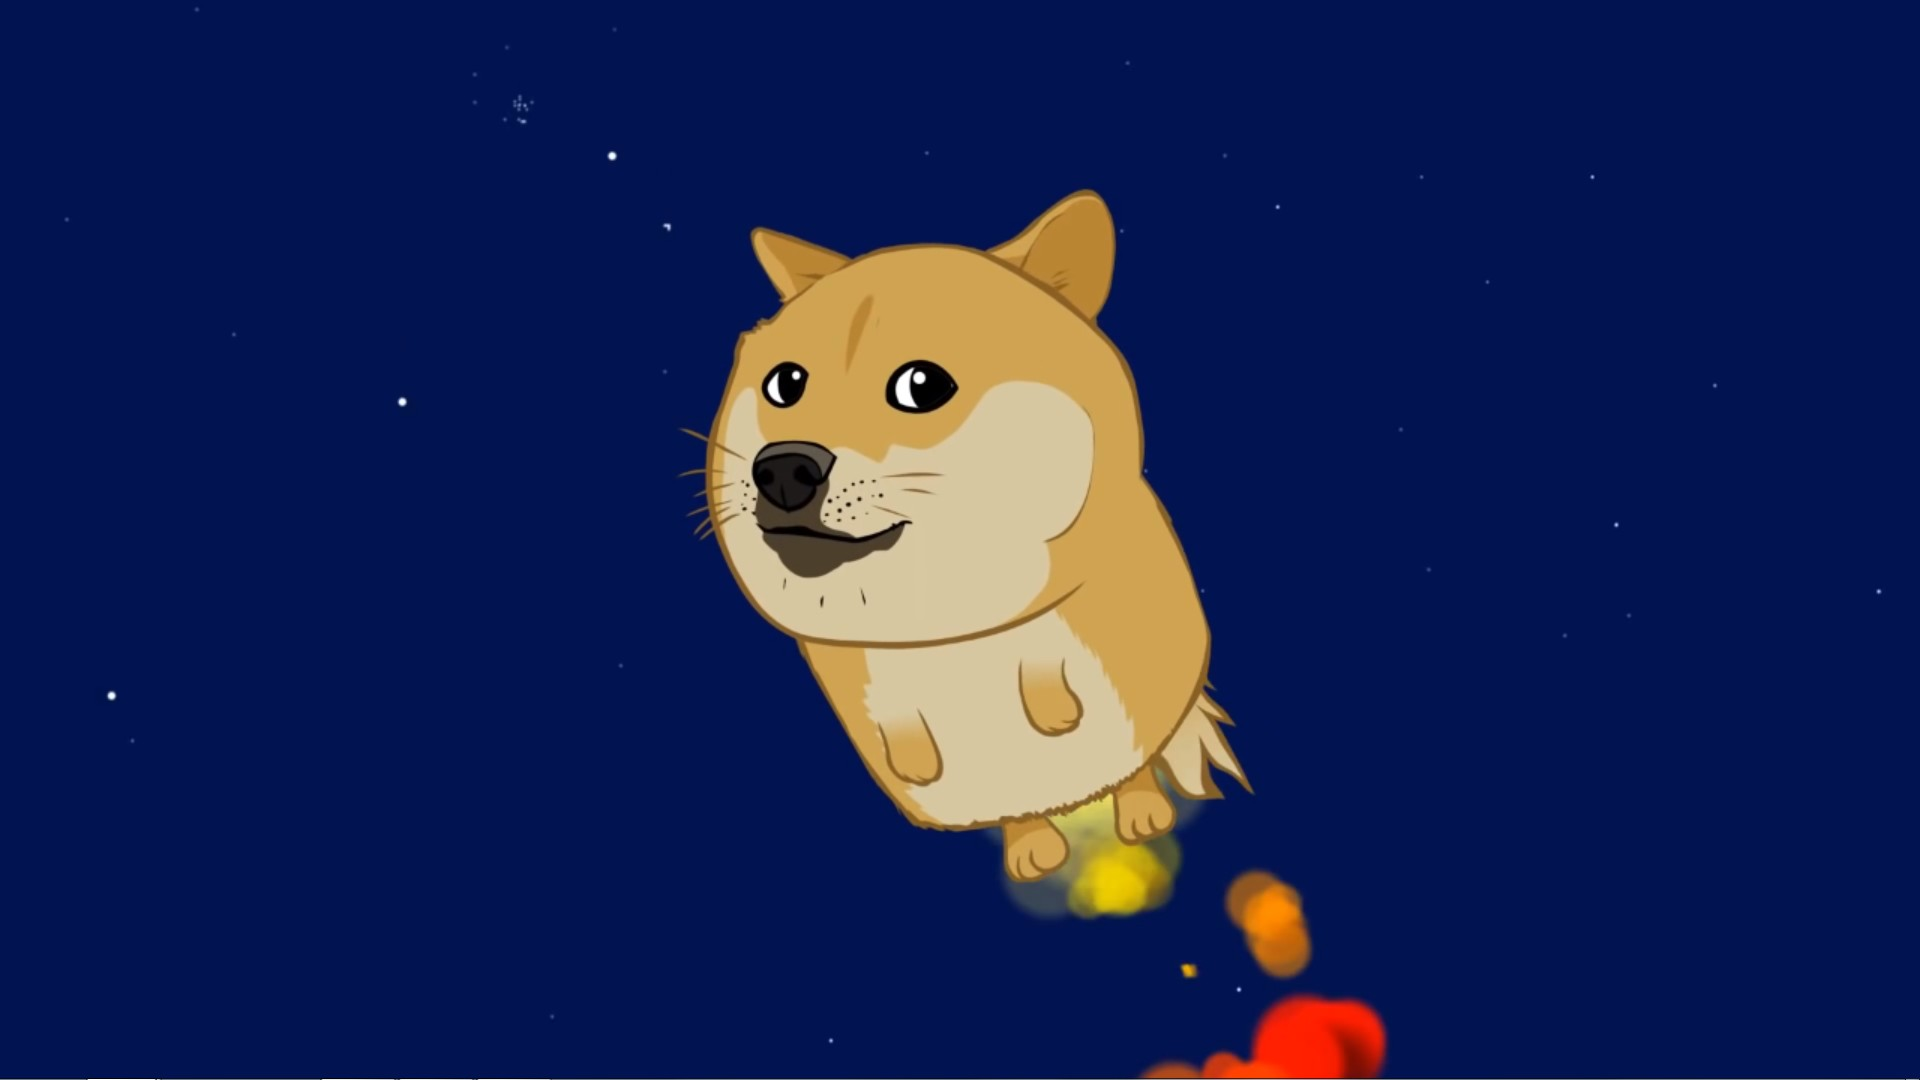 Shiba Inu Cute Desktop Wallpaper Doge Background 183 ① Download Free Cool Wallpapers For